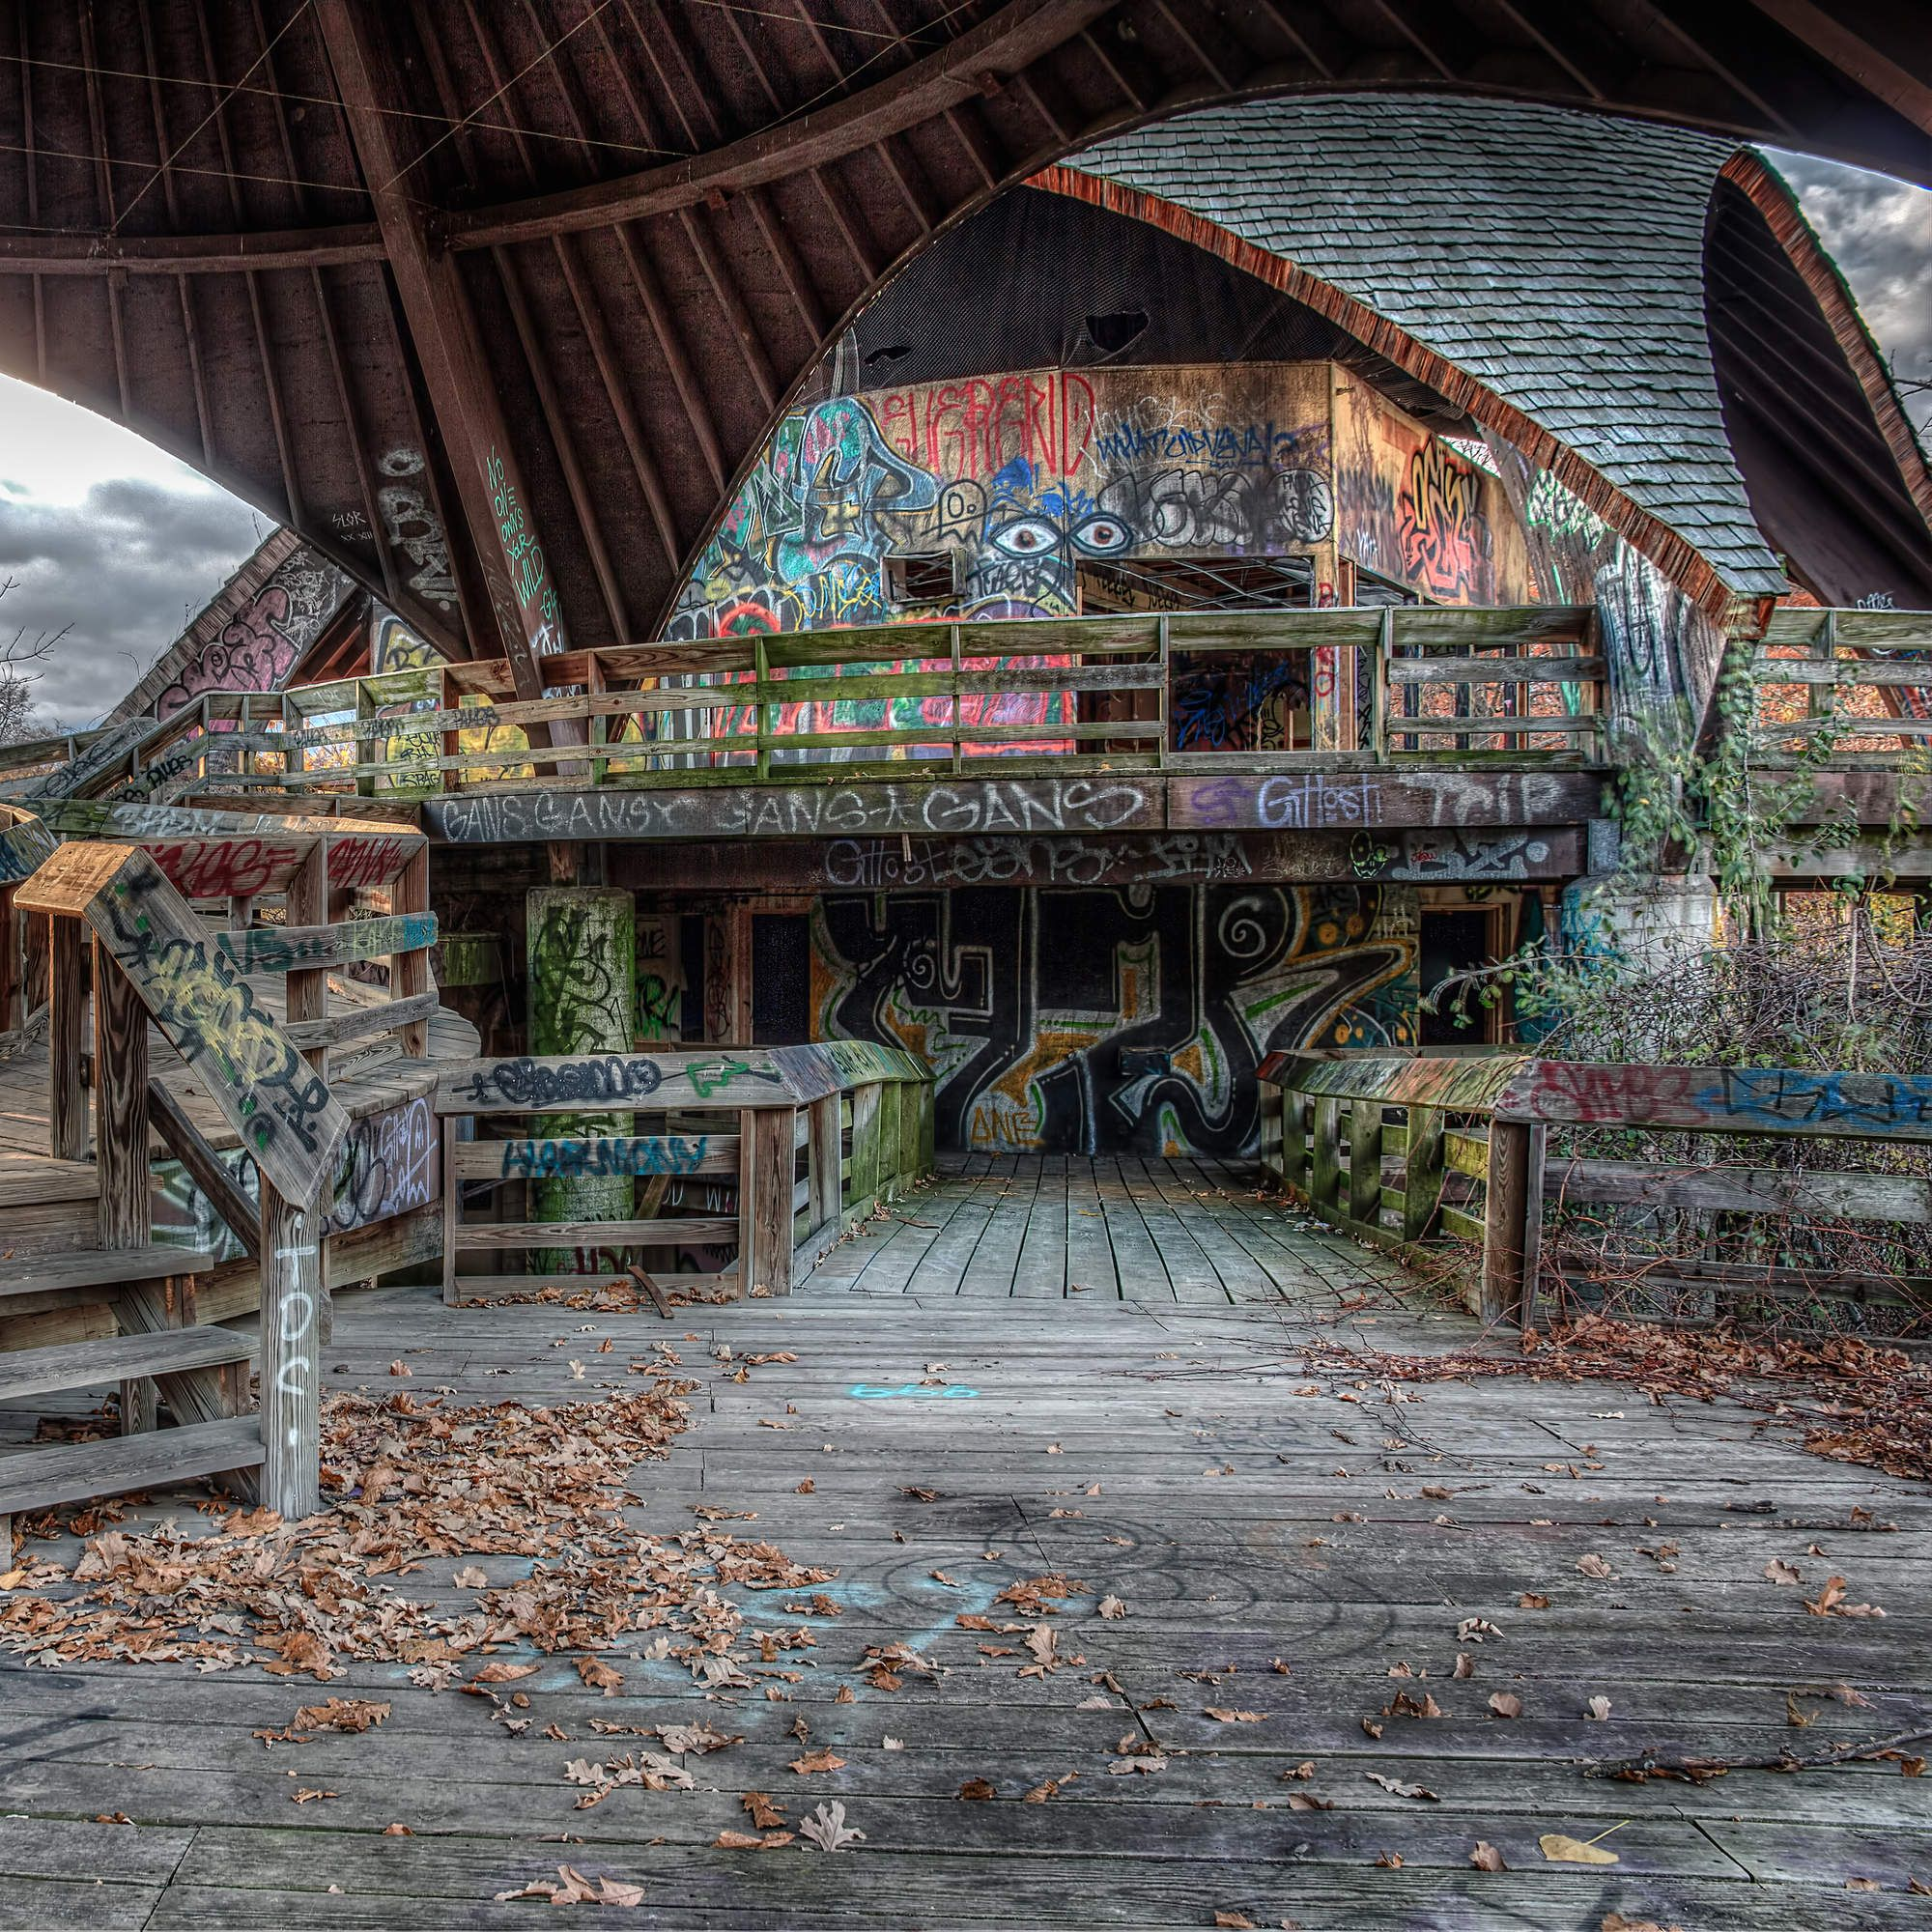 The 13 Most Insane Abandoned Places In Michigan (With Images)